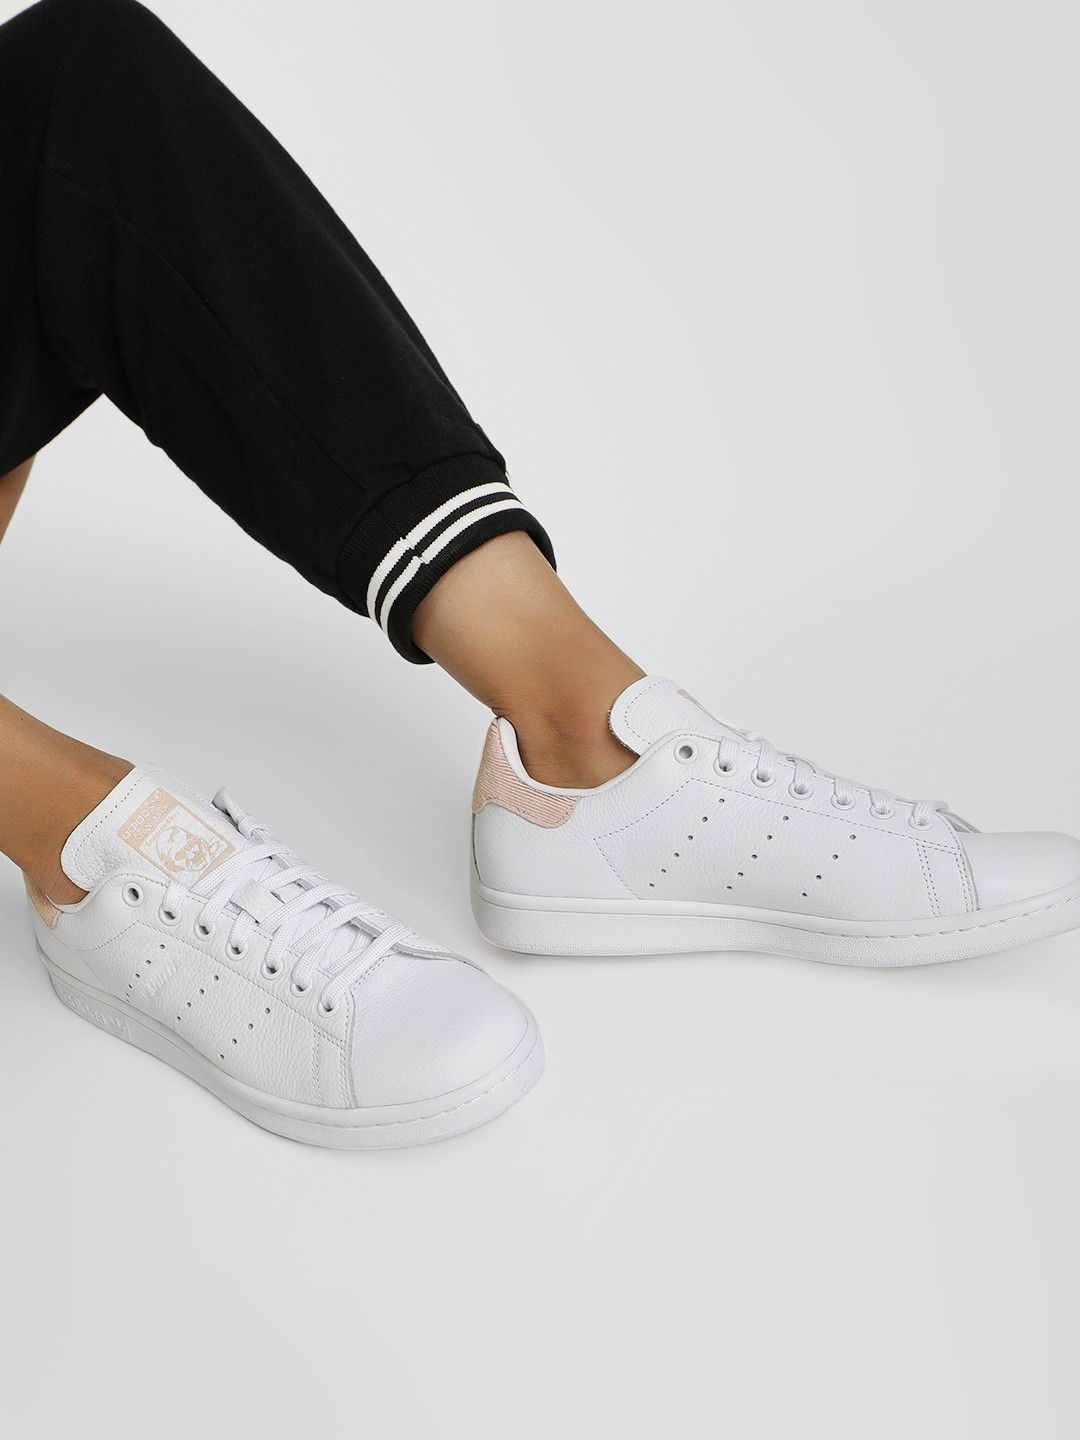 Adidas Originals White Stan Smith Shoes 1